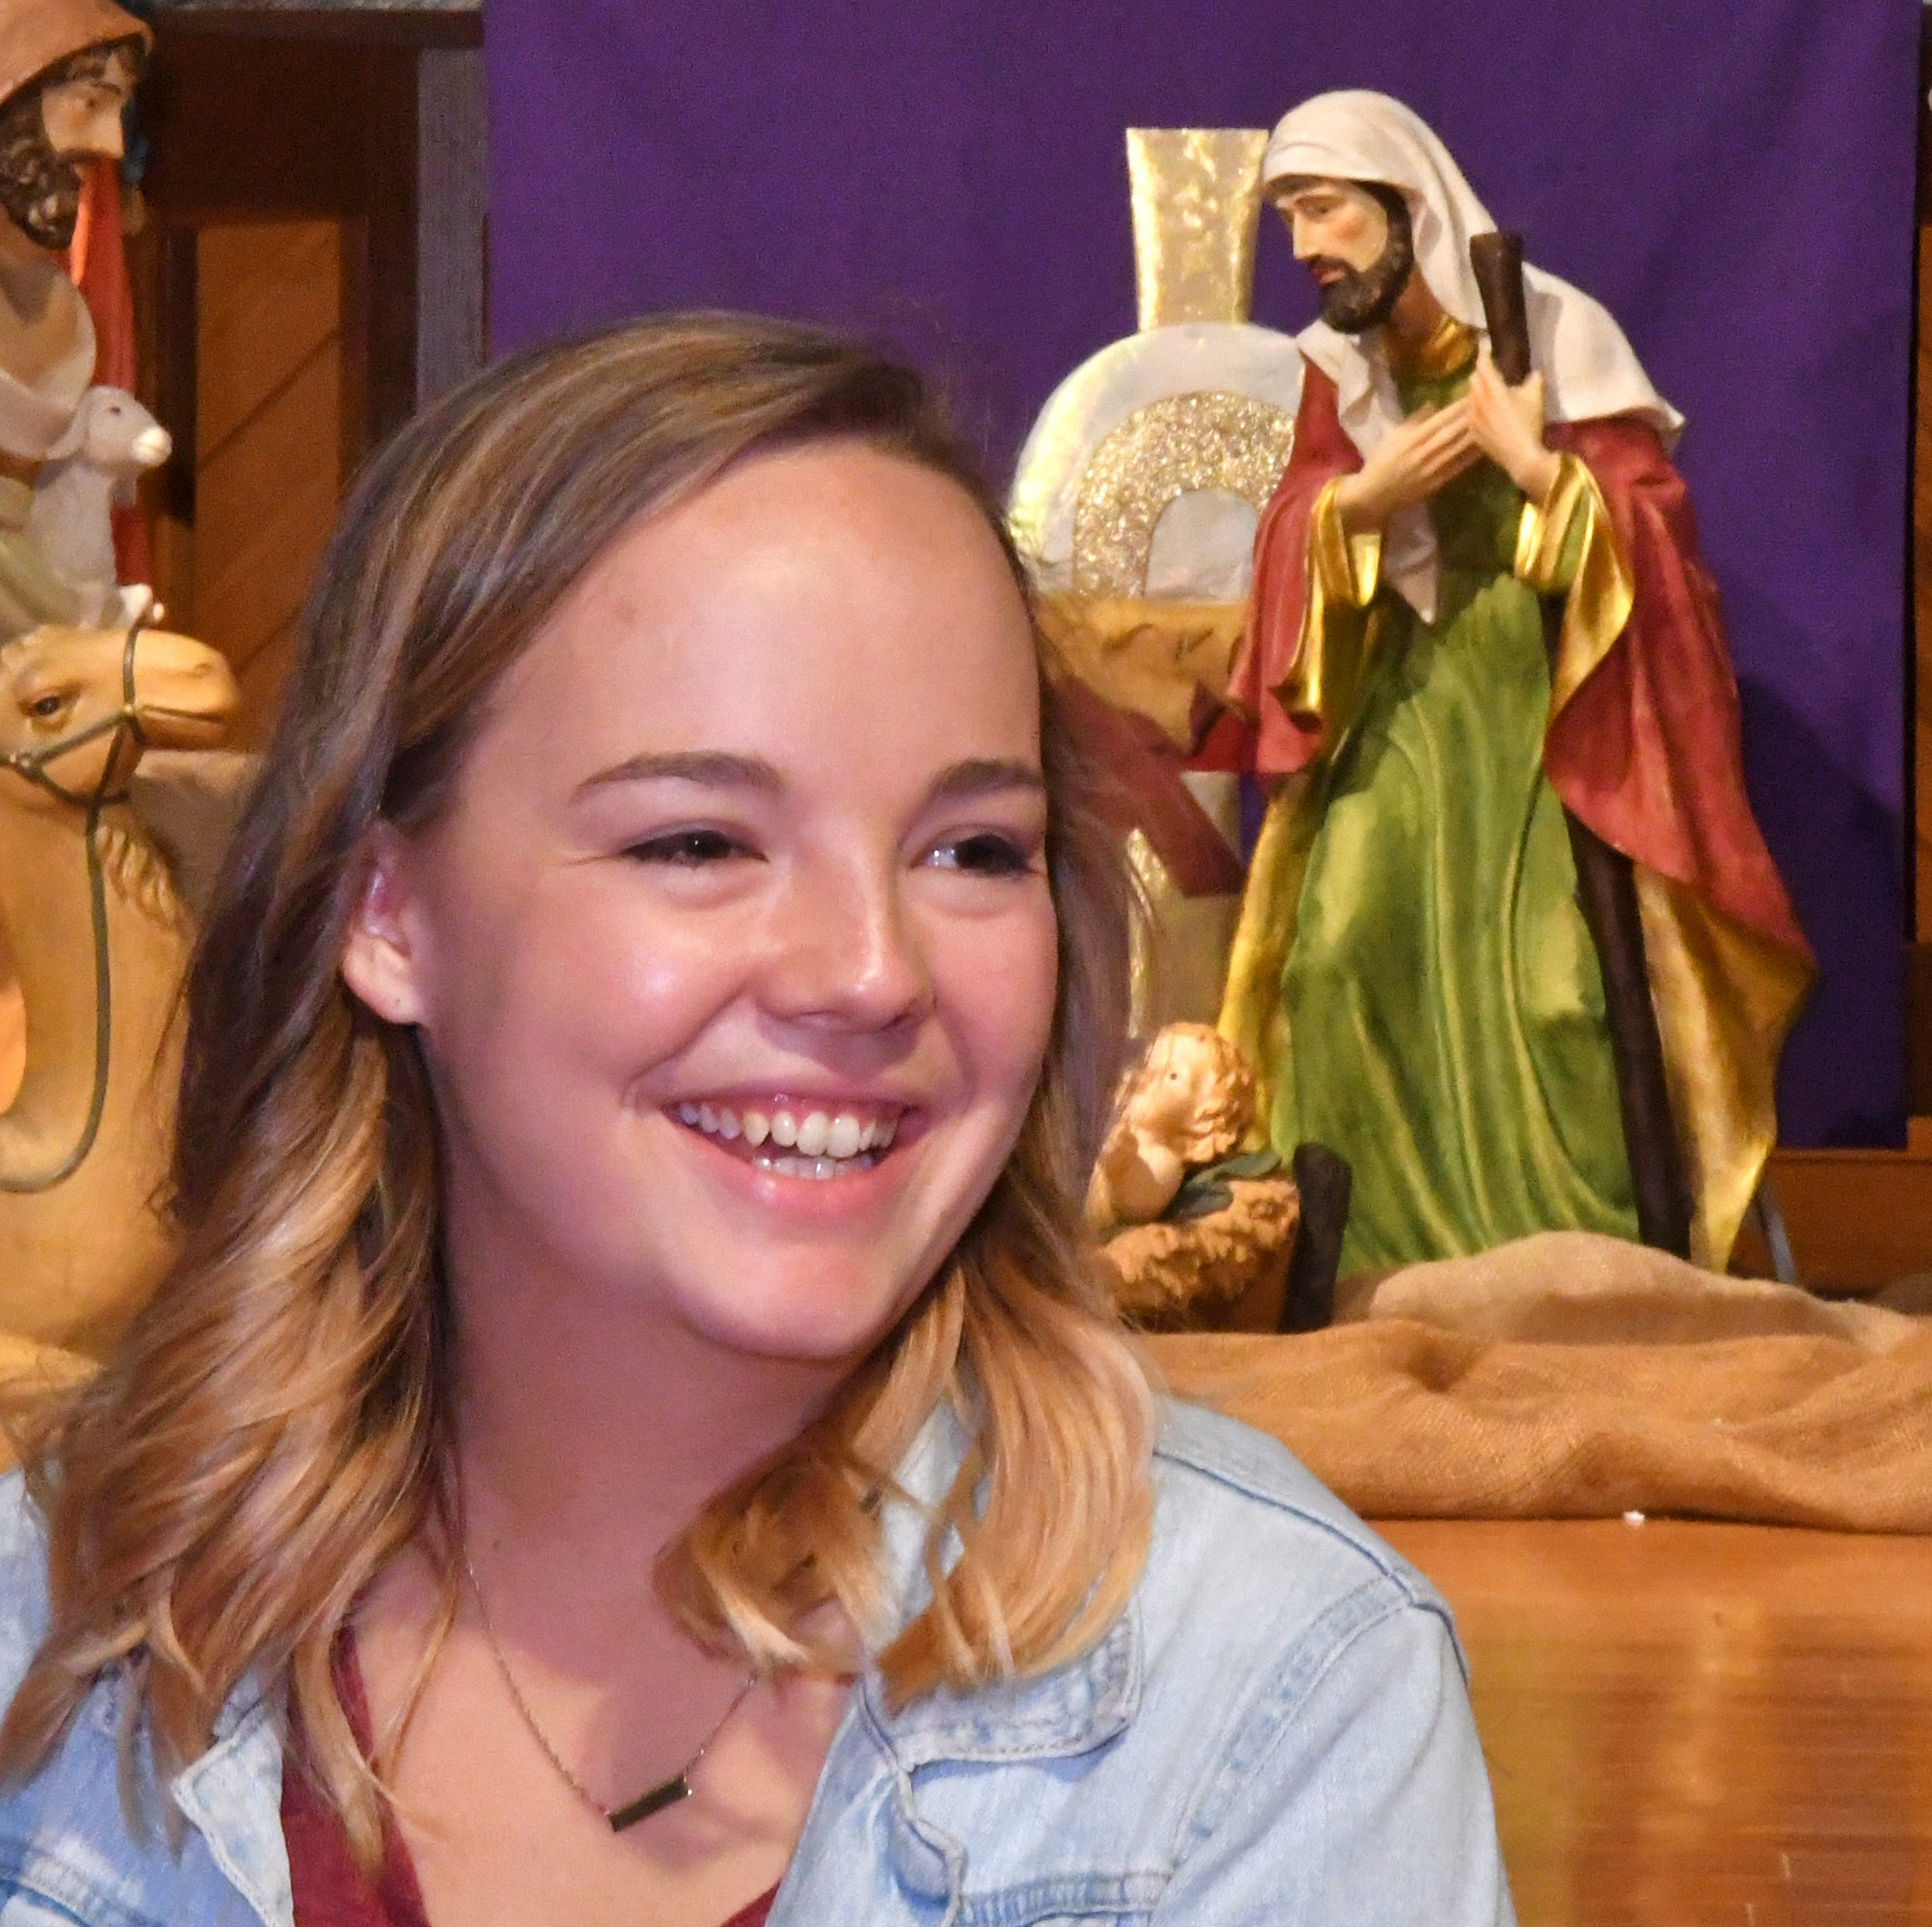 A millennial pastor in Suntree offers her thoughts on religion, youth and Christmas